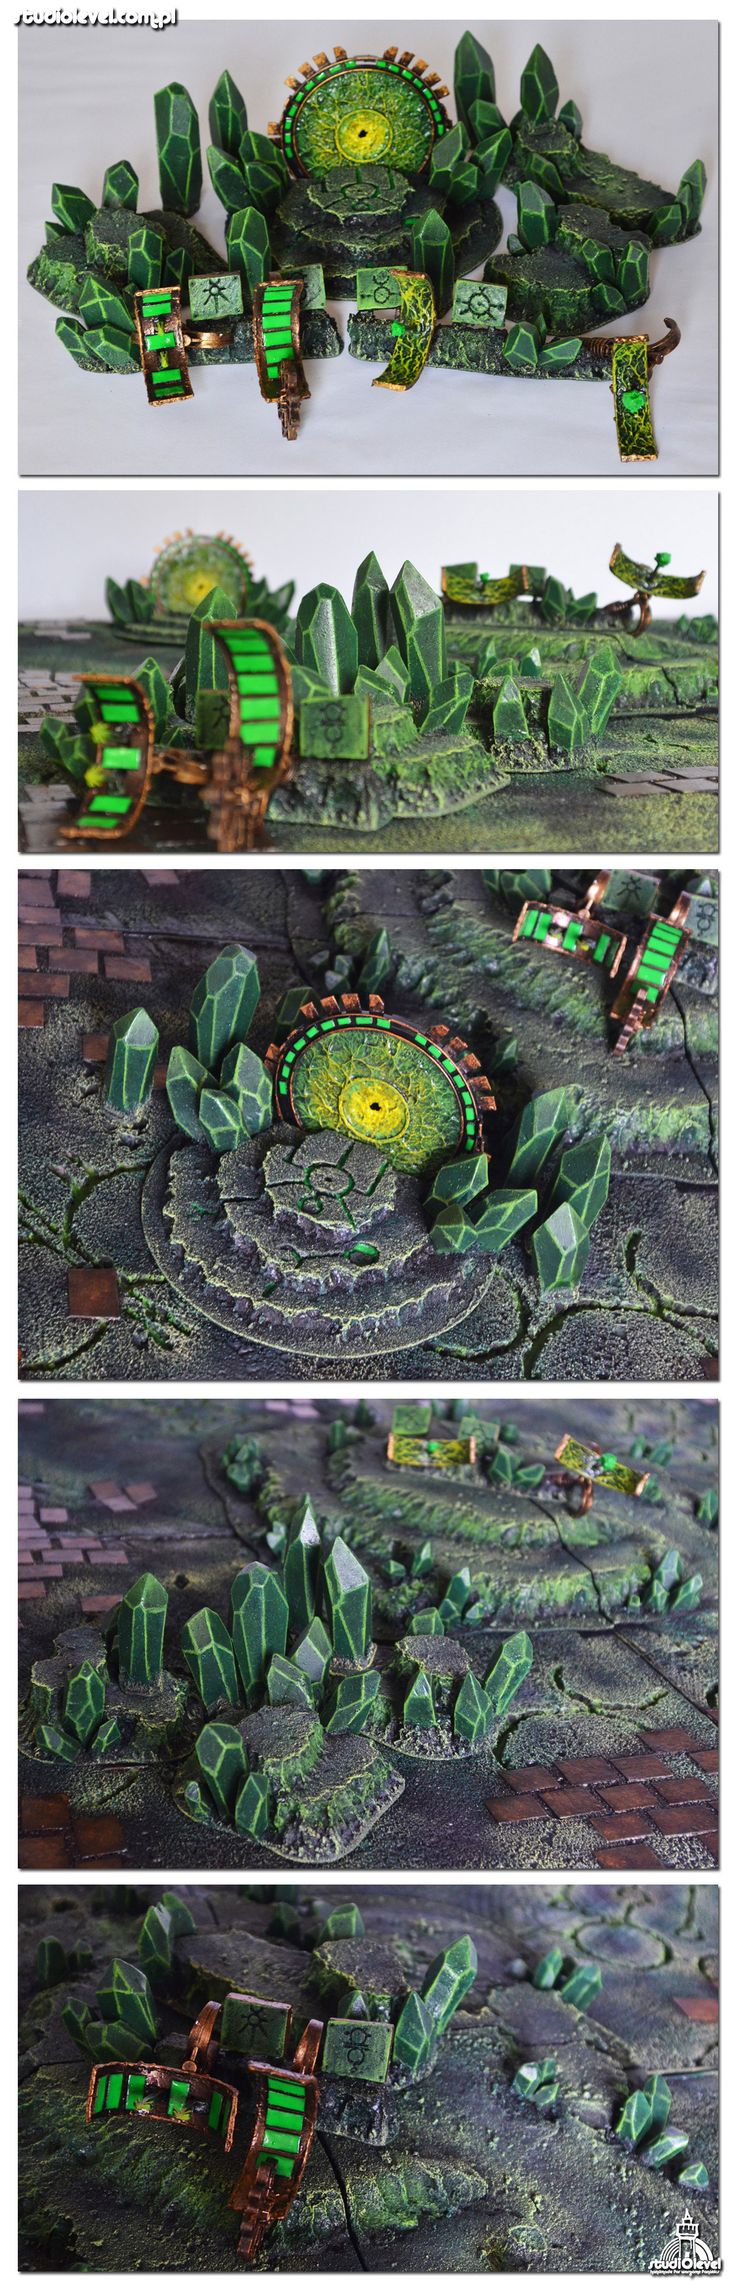 NECROPLANET MULTIPLE SYSTEM SET miniatures minis painting drawing resource tool how to tutorial instructions | Create your own roleplaying game material w/ RPG Bard: www.rpgbard.com | Writing inspiration for Dungeons and Dragons DND D&D Pathfinder PFRPG Warhammer 40k Star Wars Shadowrun Call of Cthulhu Lord of the Rings LoTR + d20 fantasy science fiction scifi horror design | Not Trusty Sword art: click artwork for source